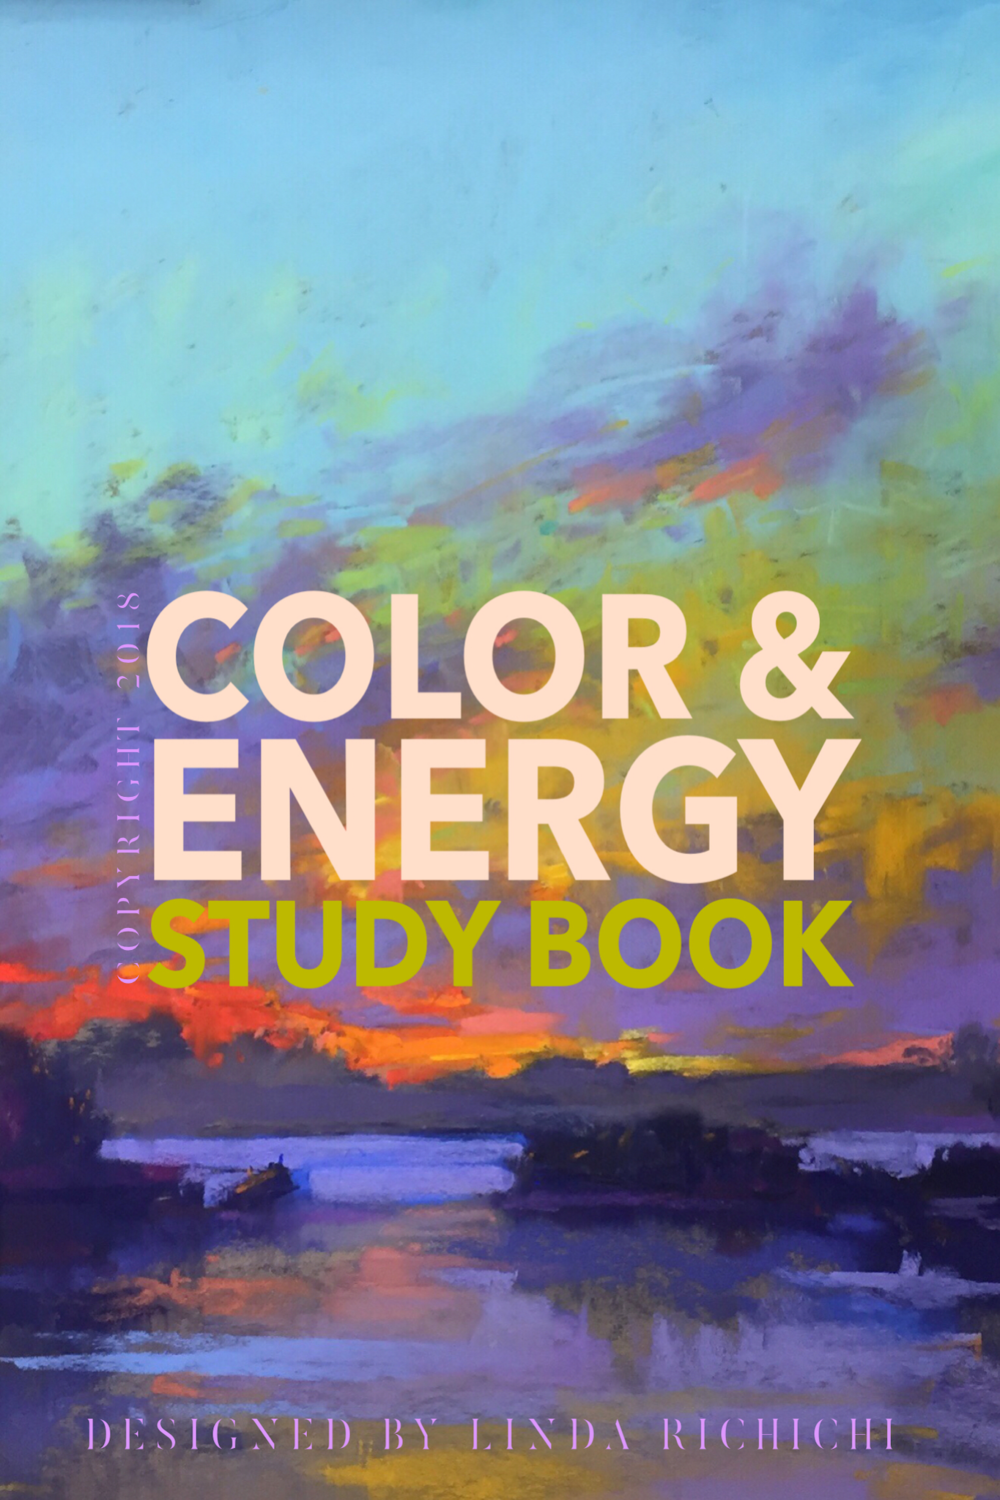 A twenty page book to work out composition, color and energy. There are 10 pages of Canson paper and 10 acetate pages in between each. Instructions are found below on the best ways to use the book.